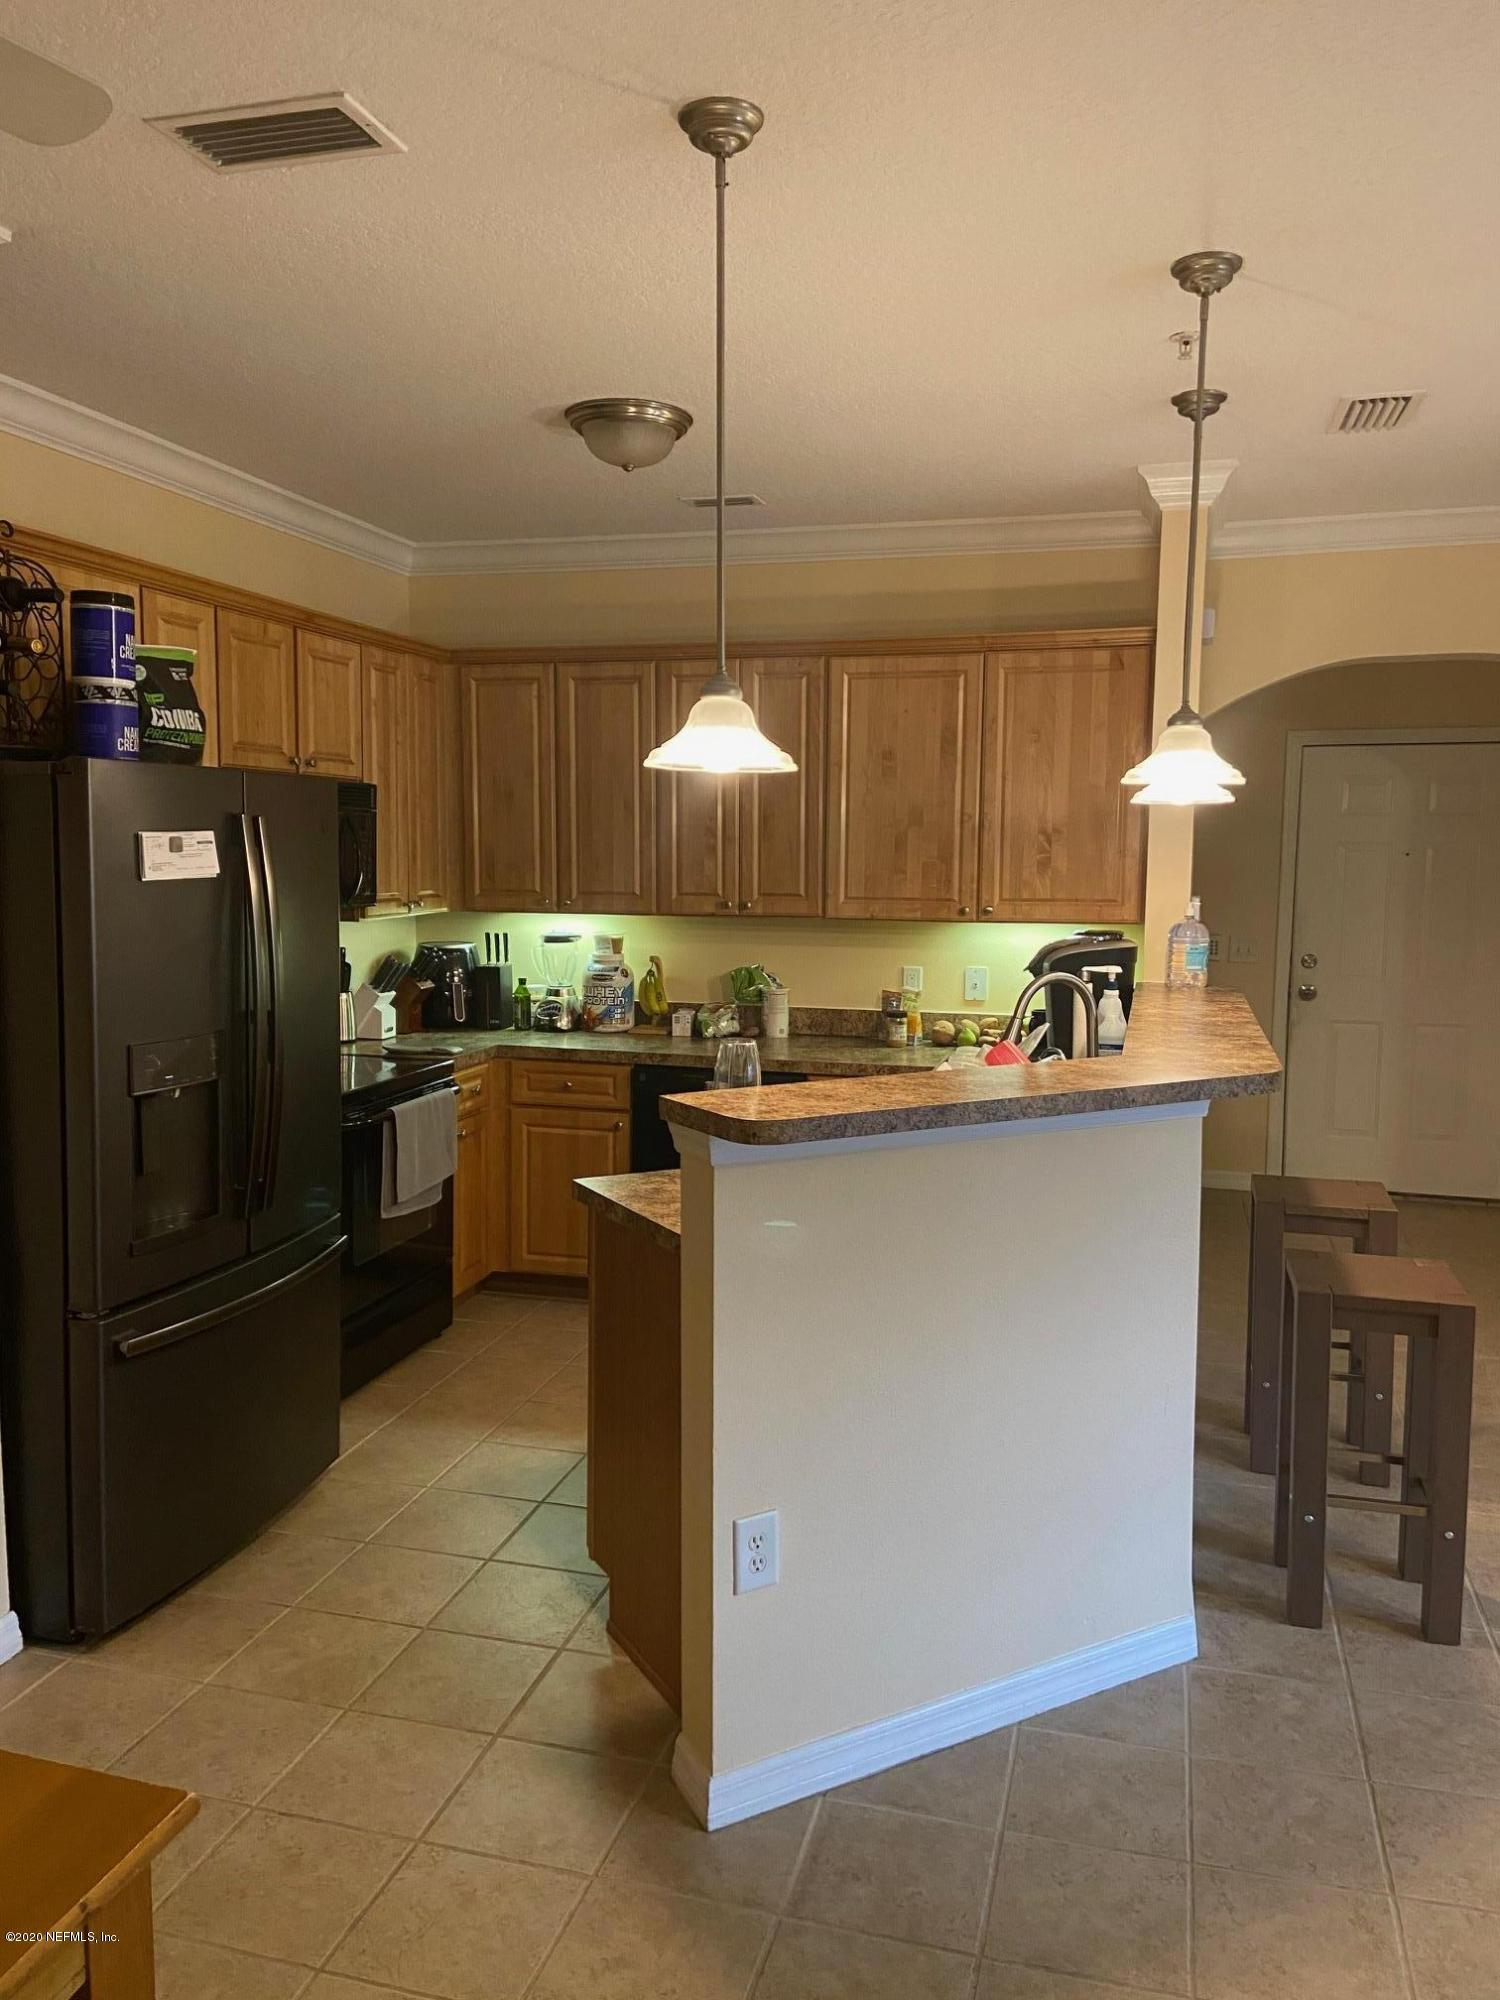 1245 9TH, GAINESVILLE, FLORIDA 32601, 3 Bedrooms Bedrooms, ,3 BathroomsBathrooms,Investment / MultiFamily,For sale,9TH,1082526